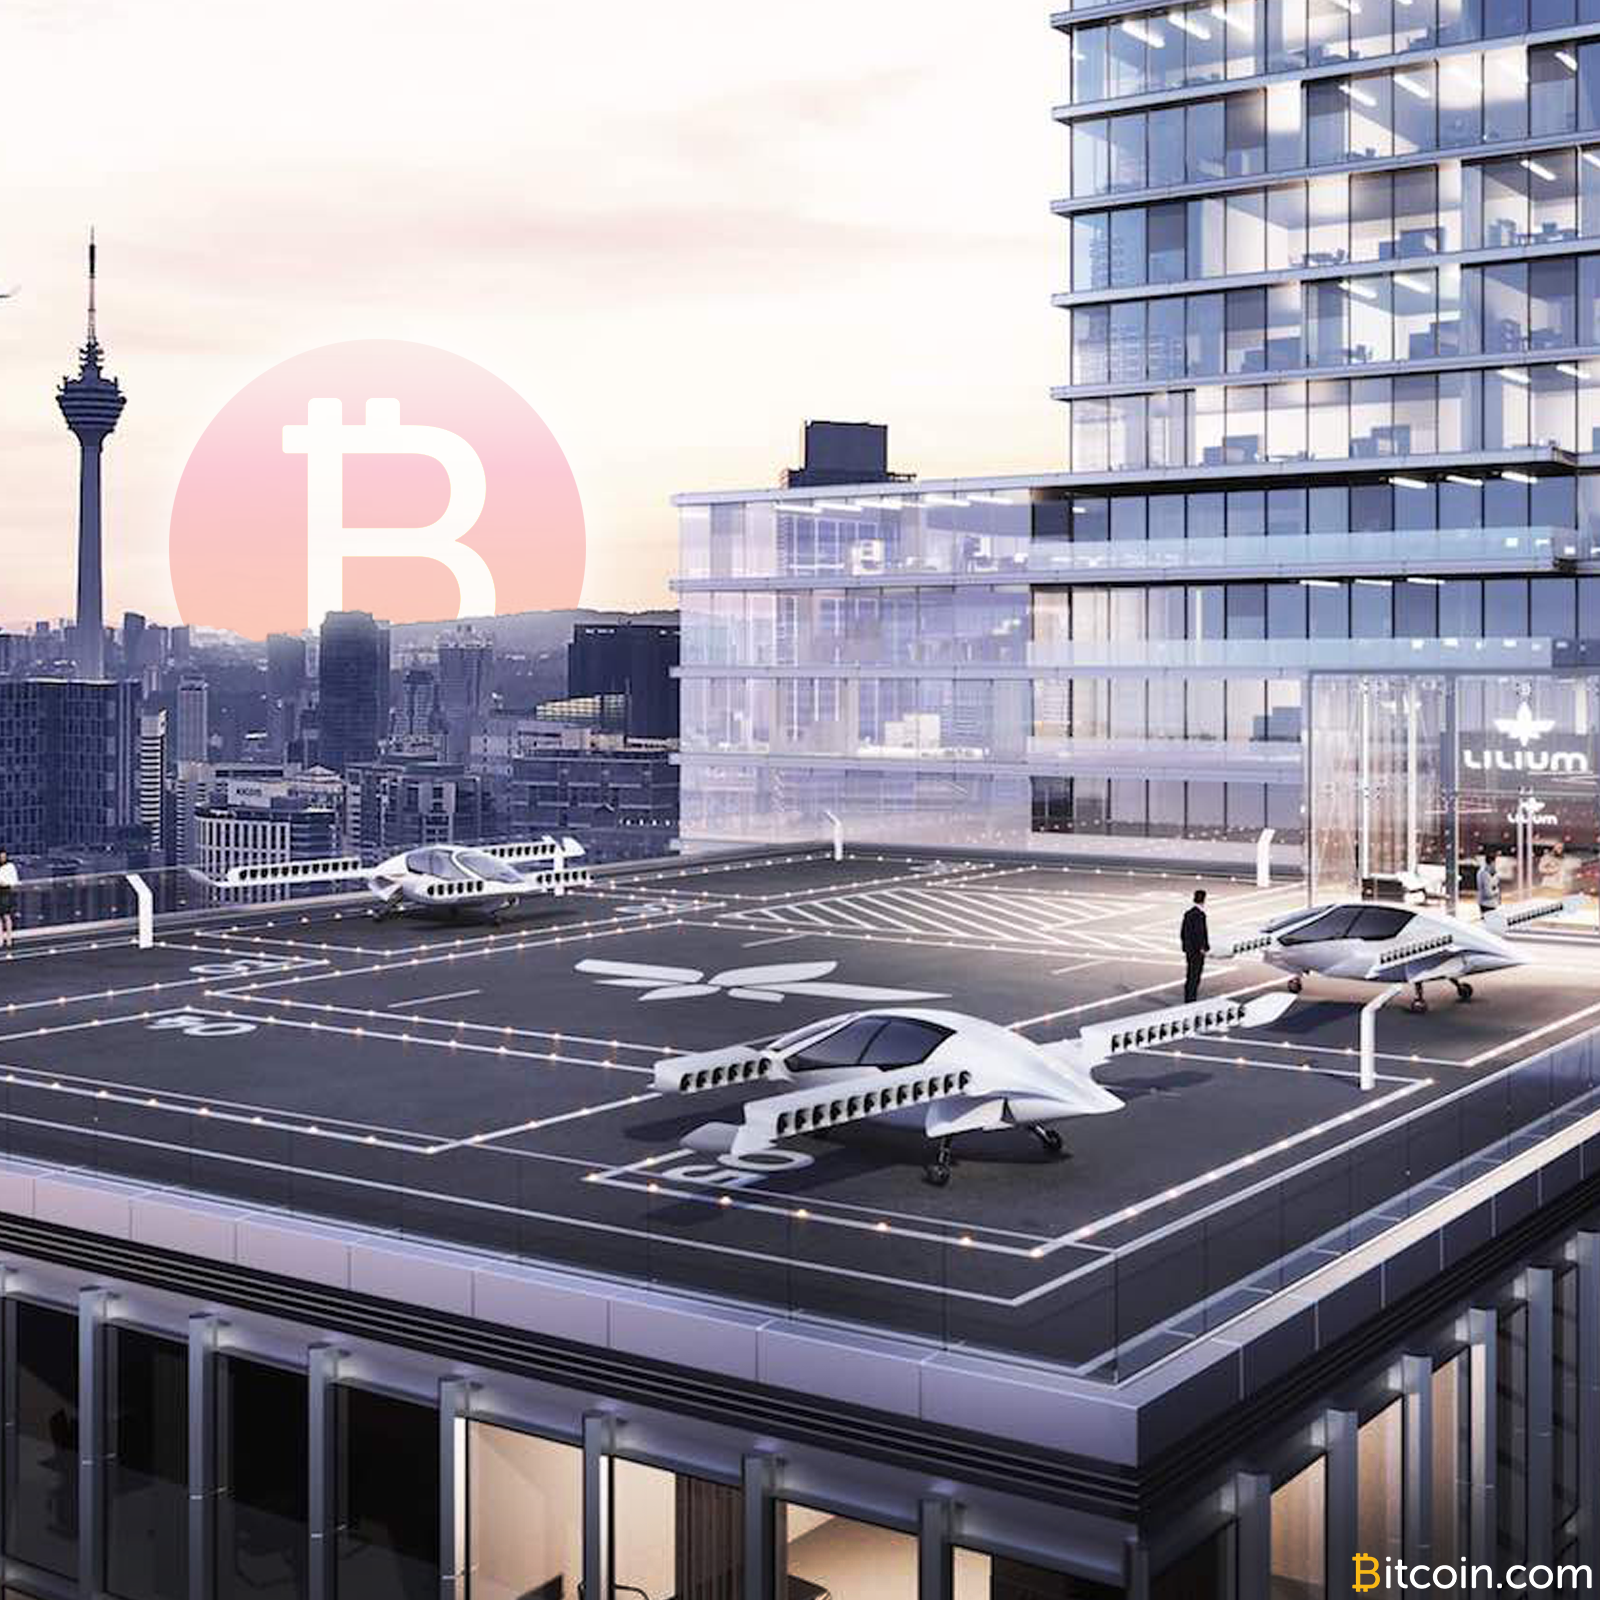 Bitcoin-Friendly Companies Enter the Flying Taxi Business - Bitcoin News